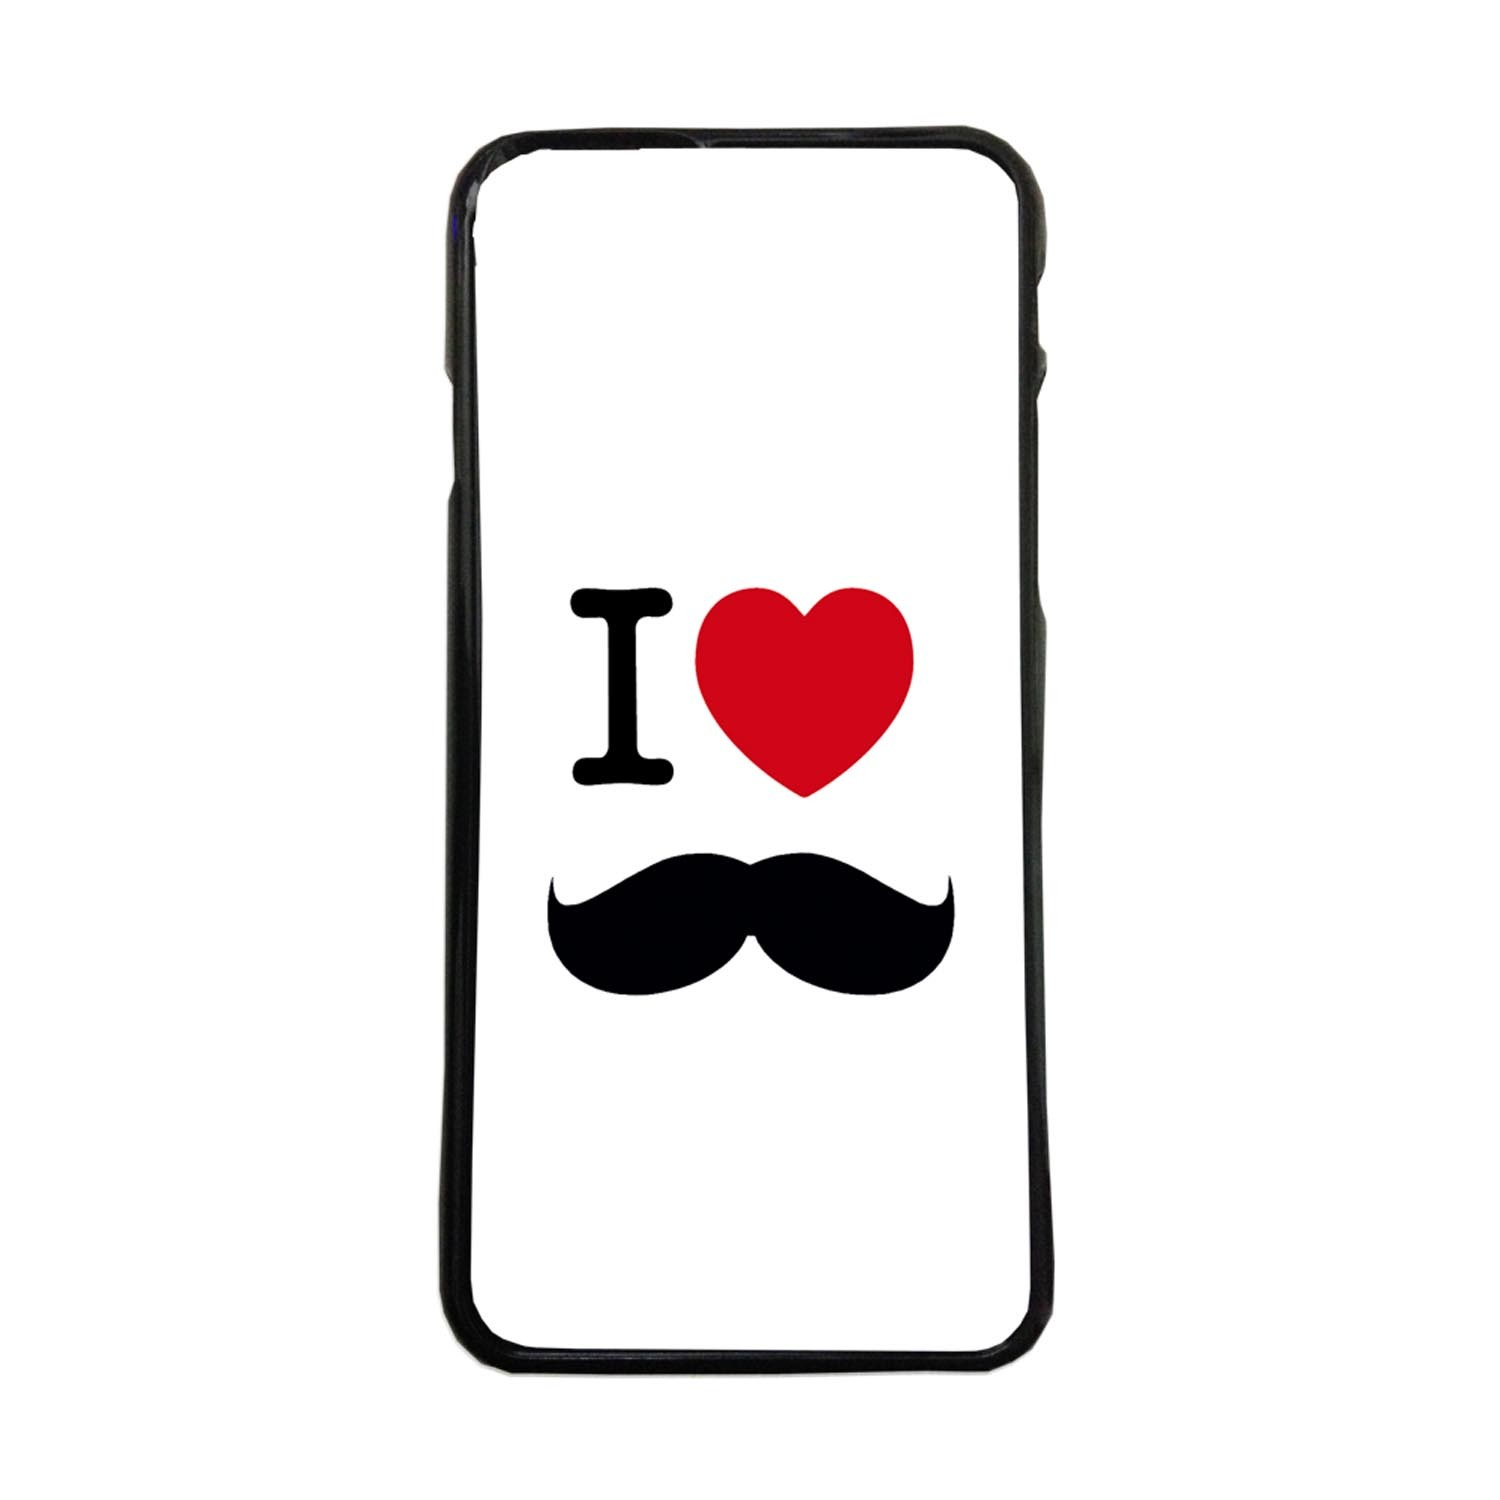 Fundas movil carcasas compatible con sony xperia xz I love bigotes